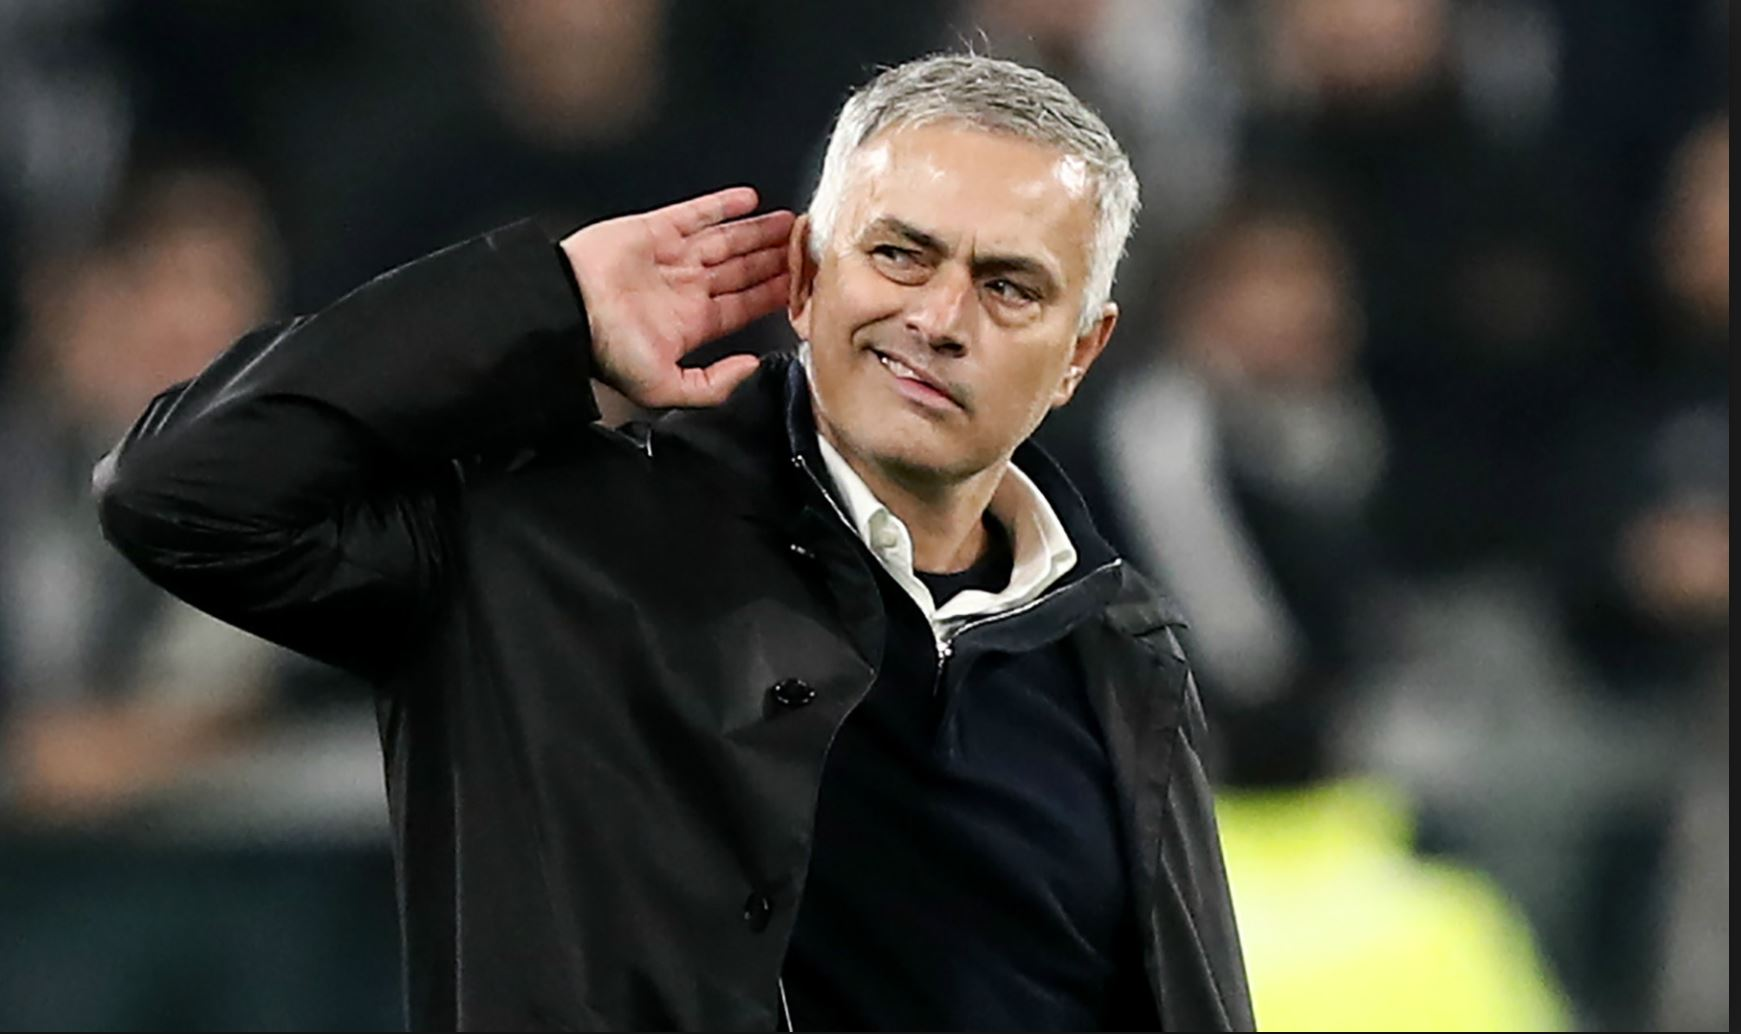 Jose Mourinho accepts one-year jail sentence for tax fraud